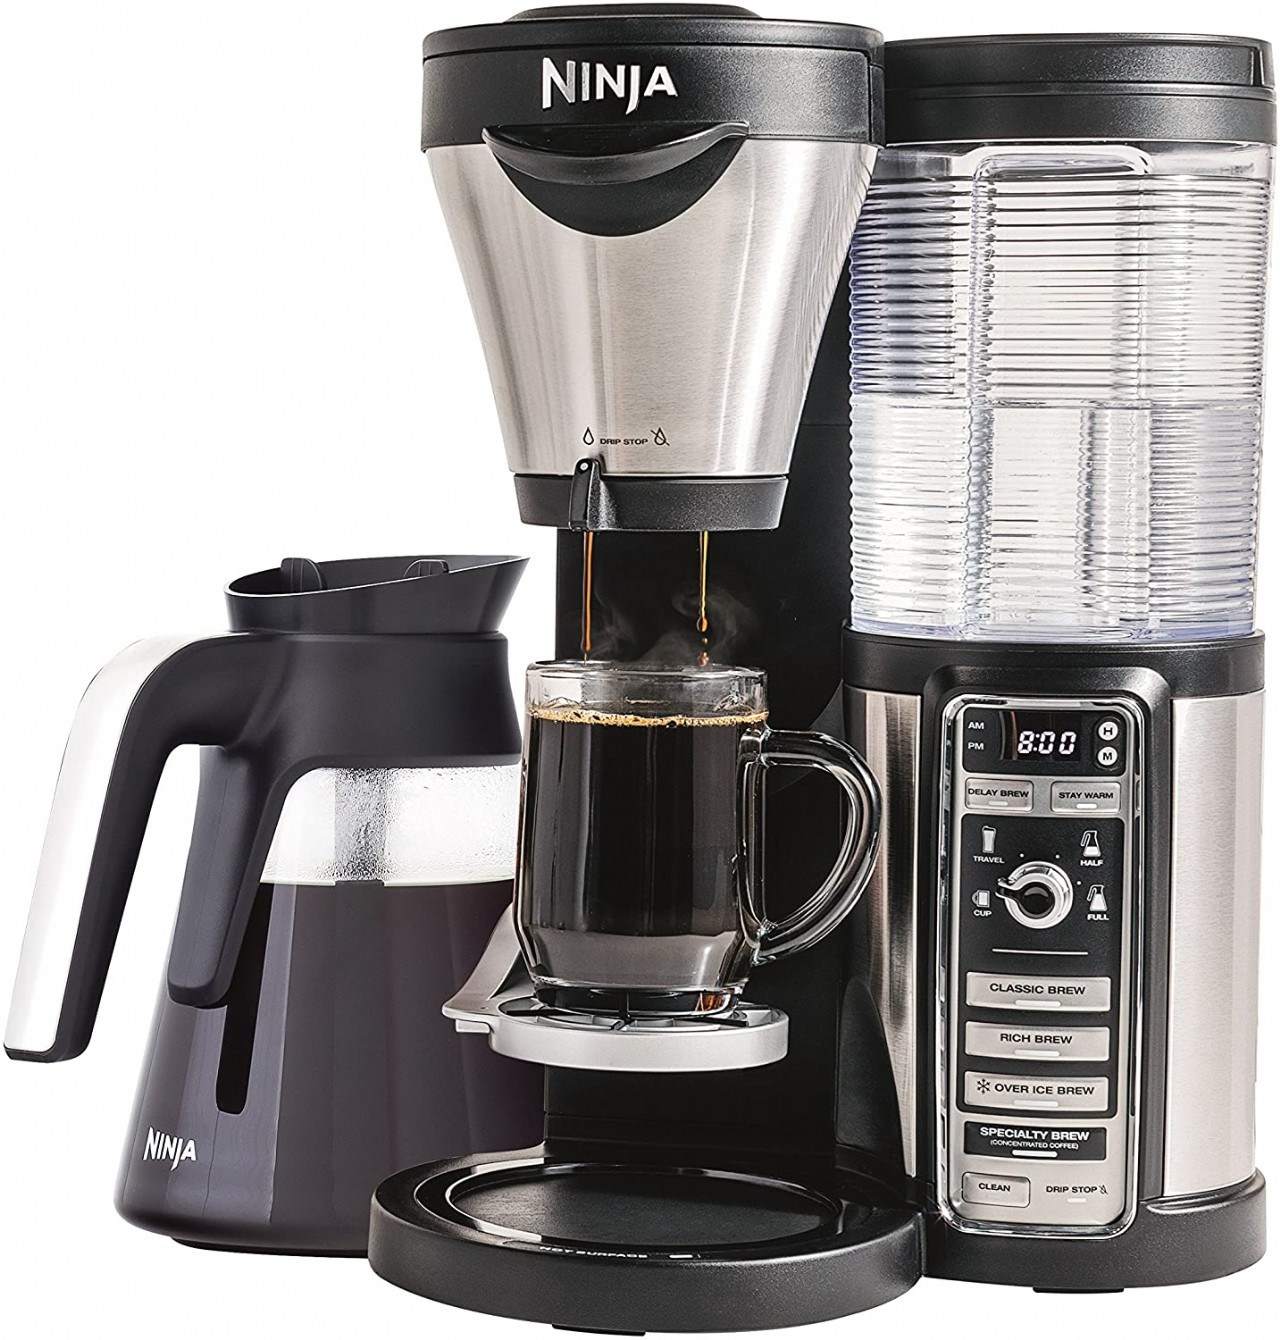 Ninja Coffee Maker for Hot/Iced/Frozen Coffee with 4 Brew Sizes, Programmable Auto-iQ, Milk Frother,